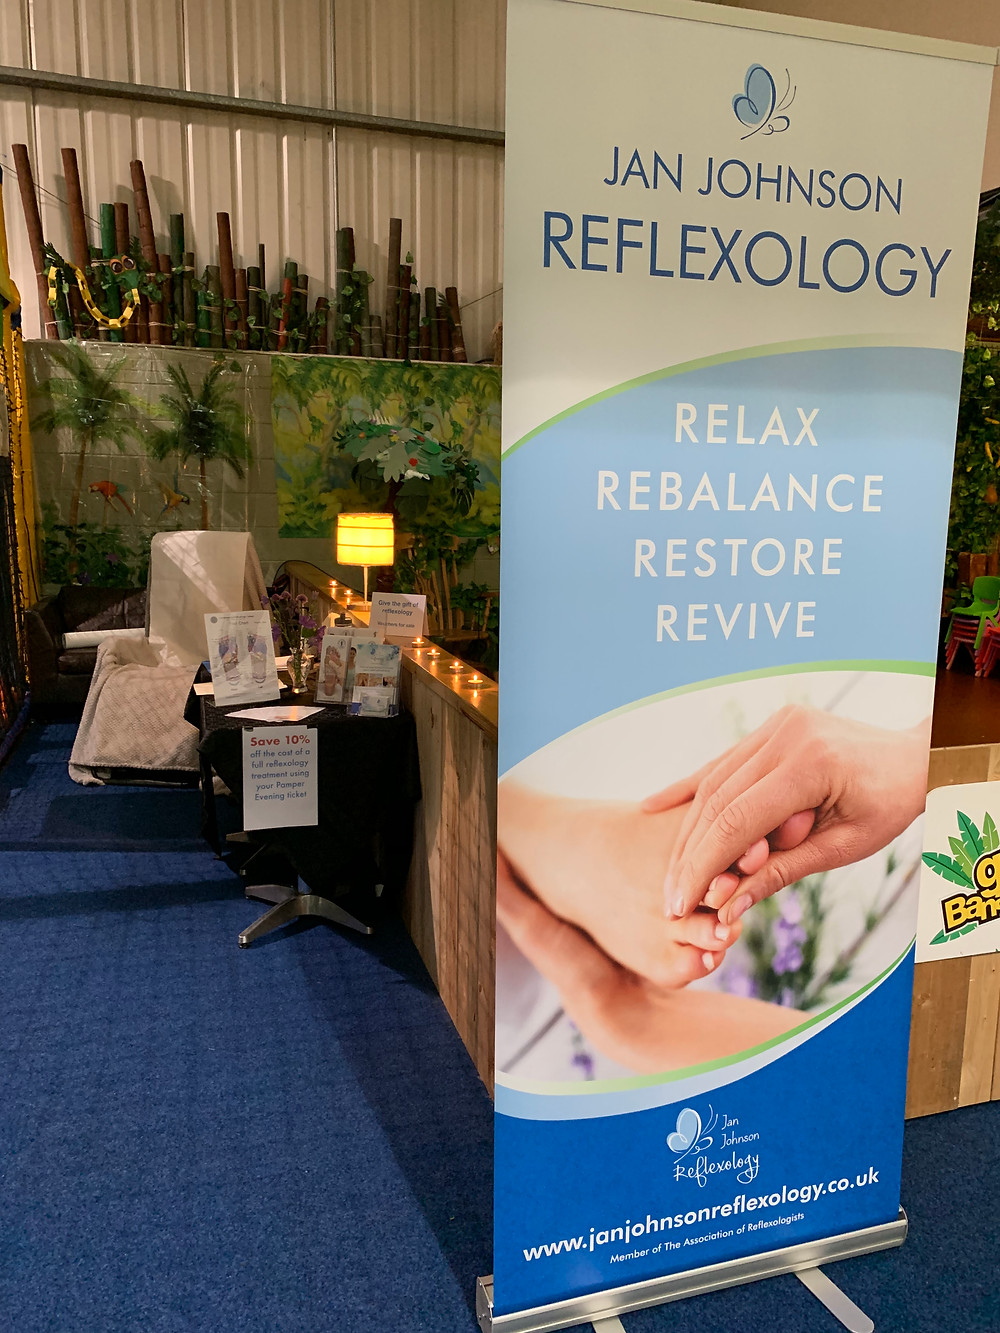 La Fuma recliner chair and table with information about reflexology. Jan Johnson Reflexology offered 20 minute taster sessions at the Pamper Evening.